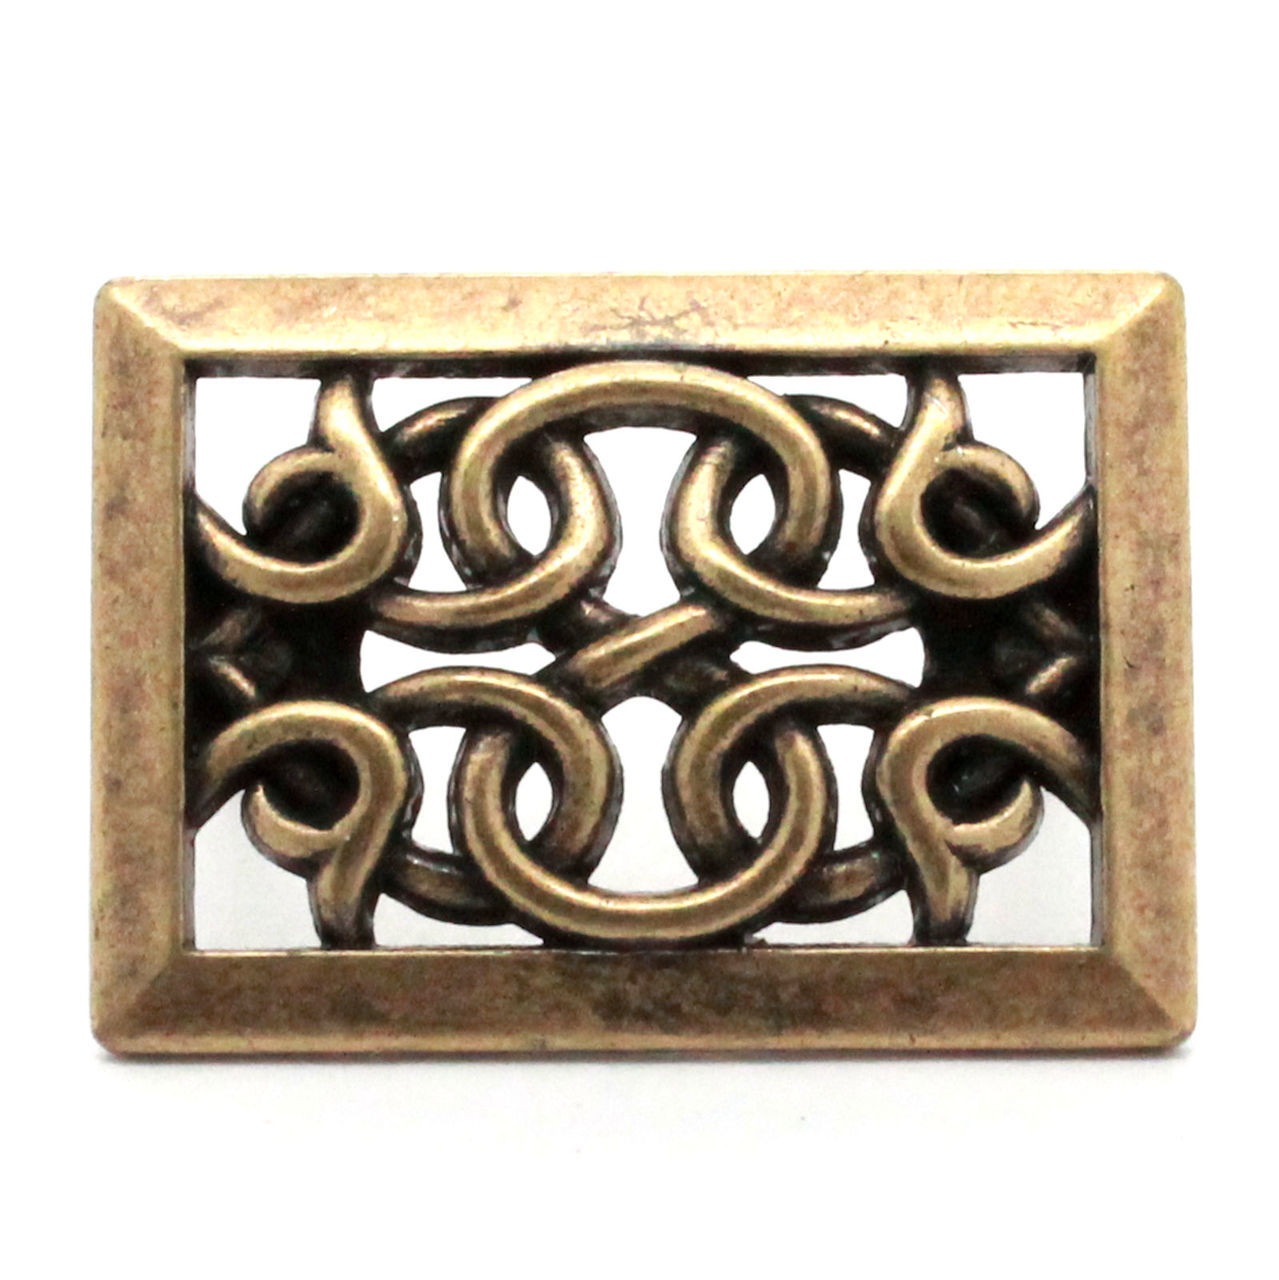 Upholstery tack antique brass front